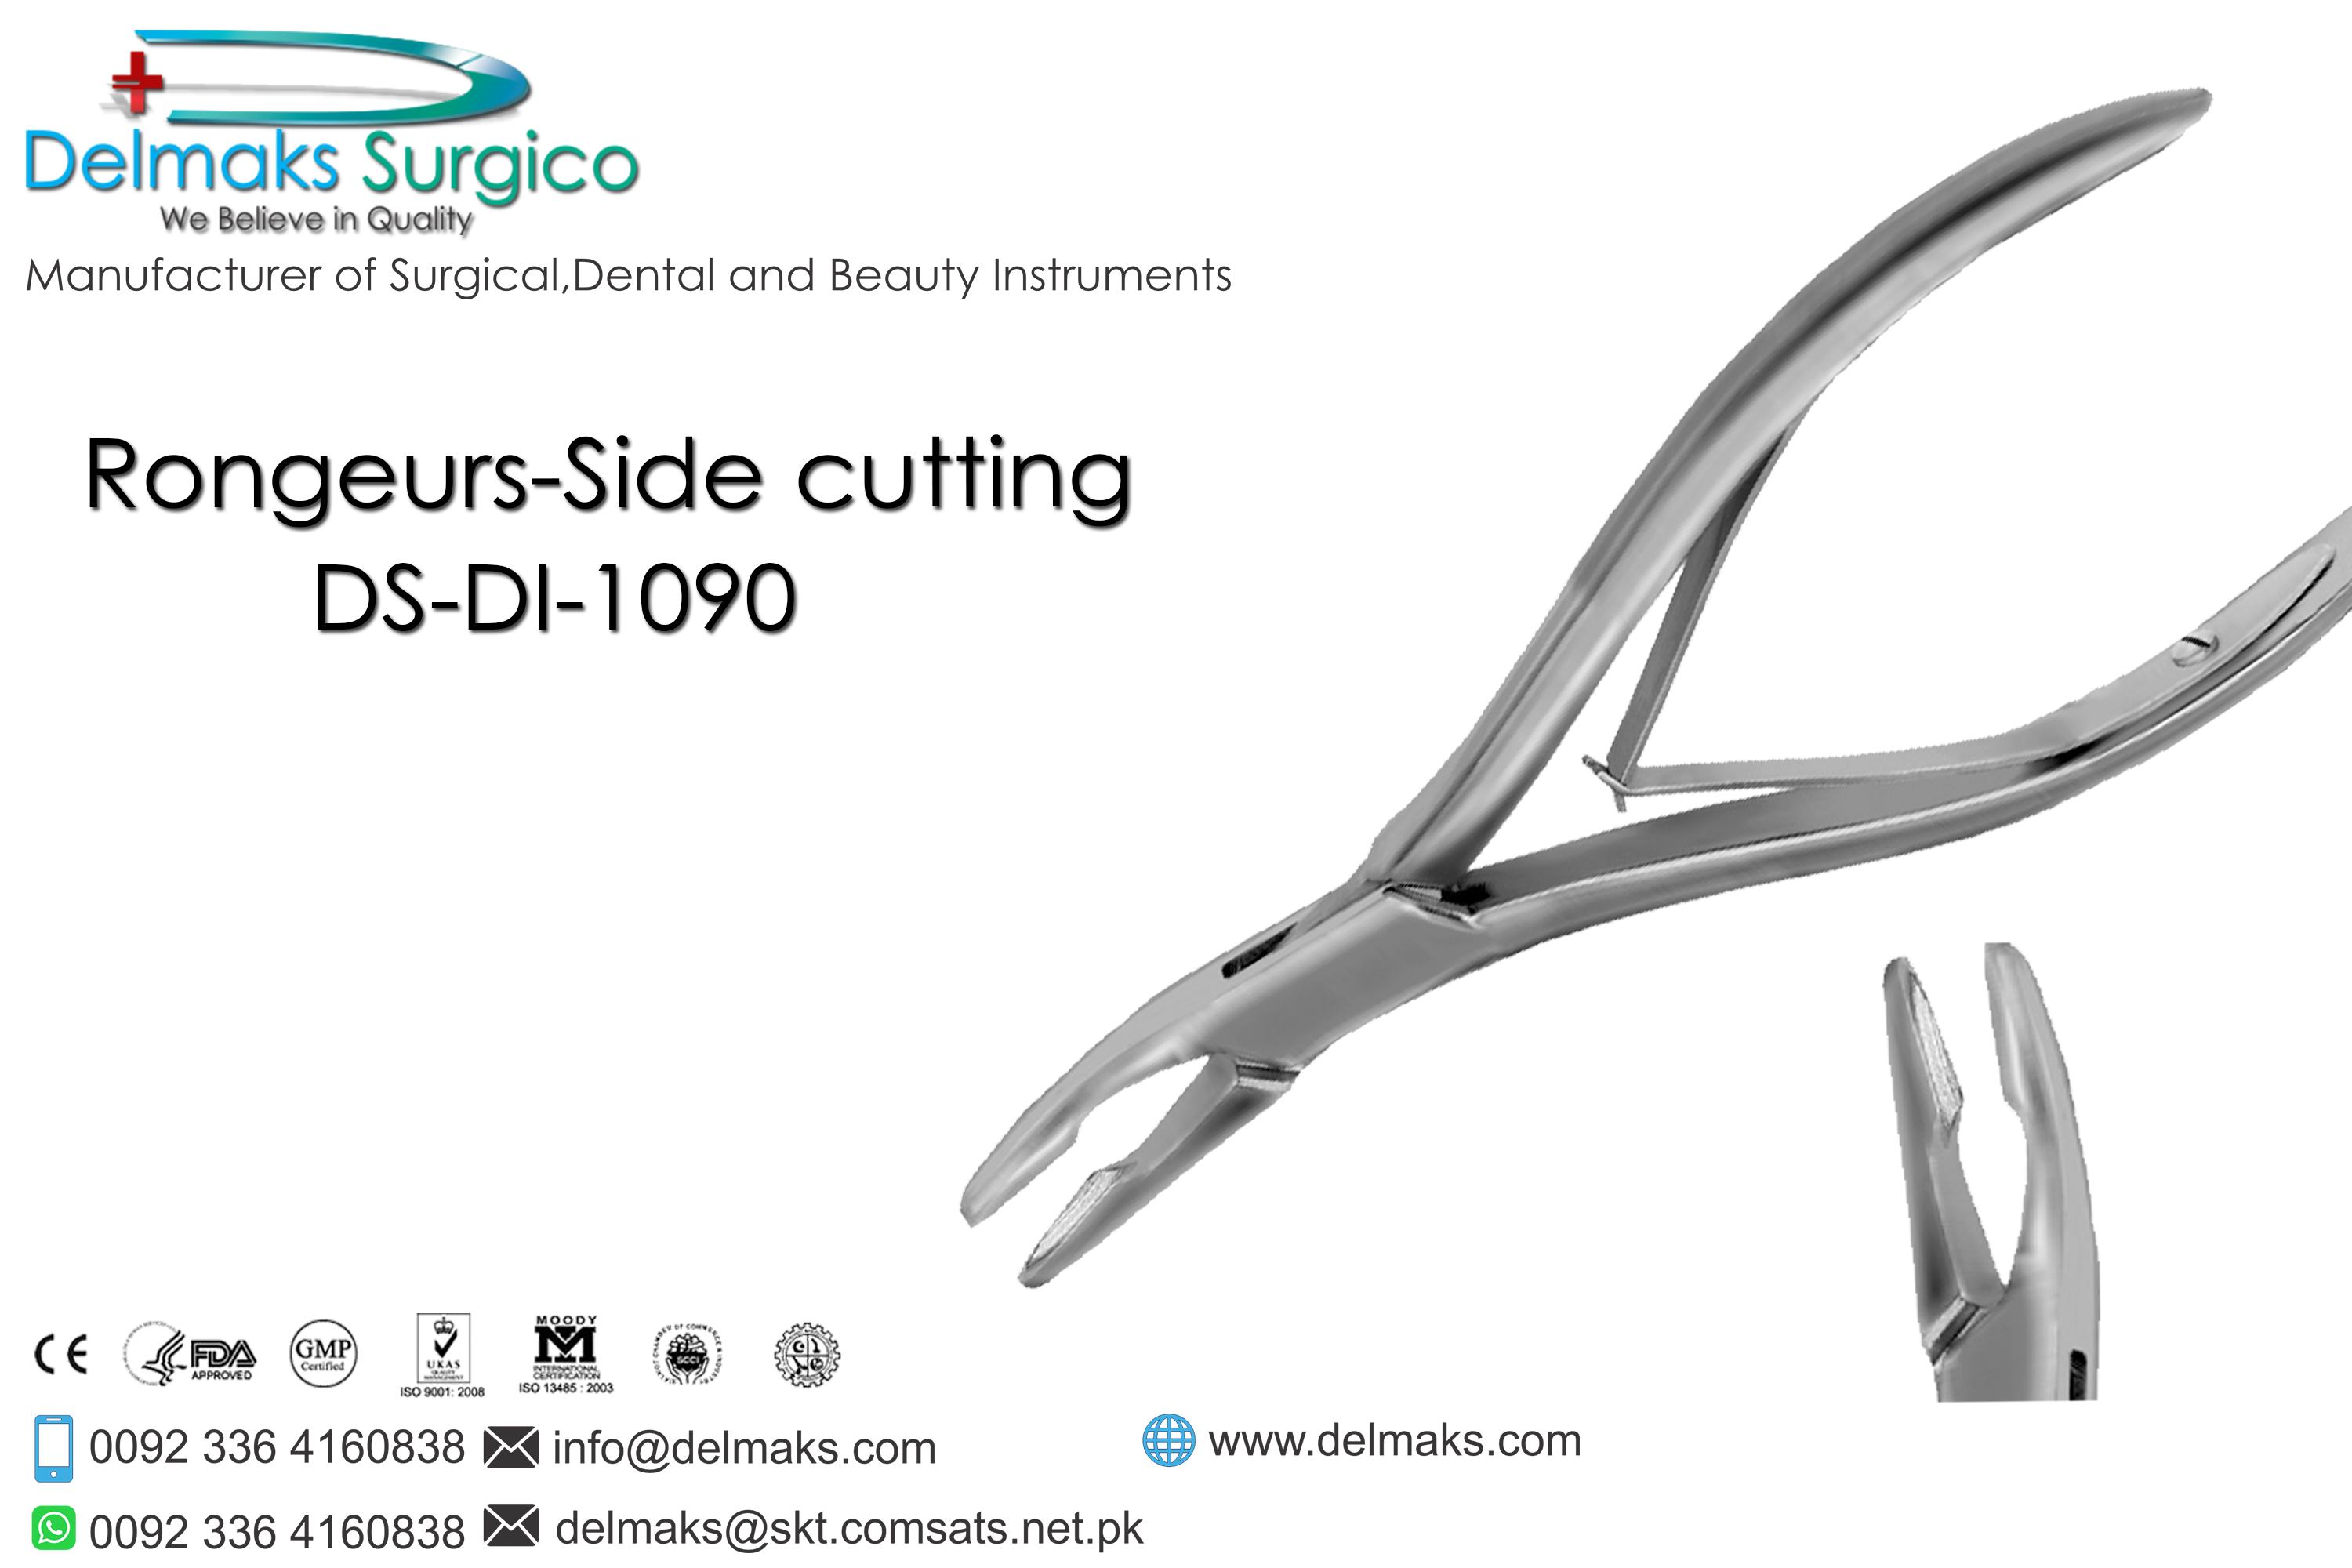 Rongeurs Side Cutting-Oral And Maxillofacial Surgery Instruments-Dental Instruments-Delmaks Surgico